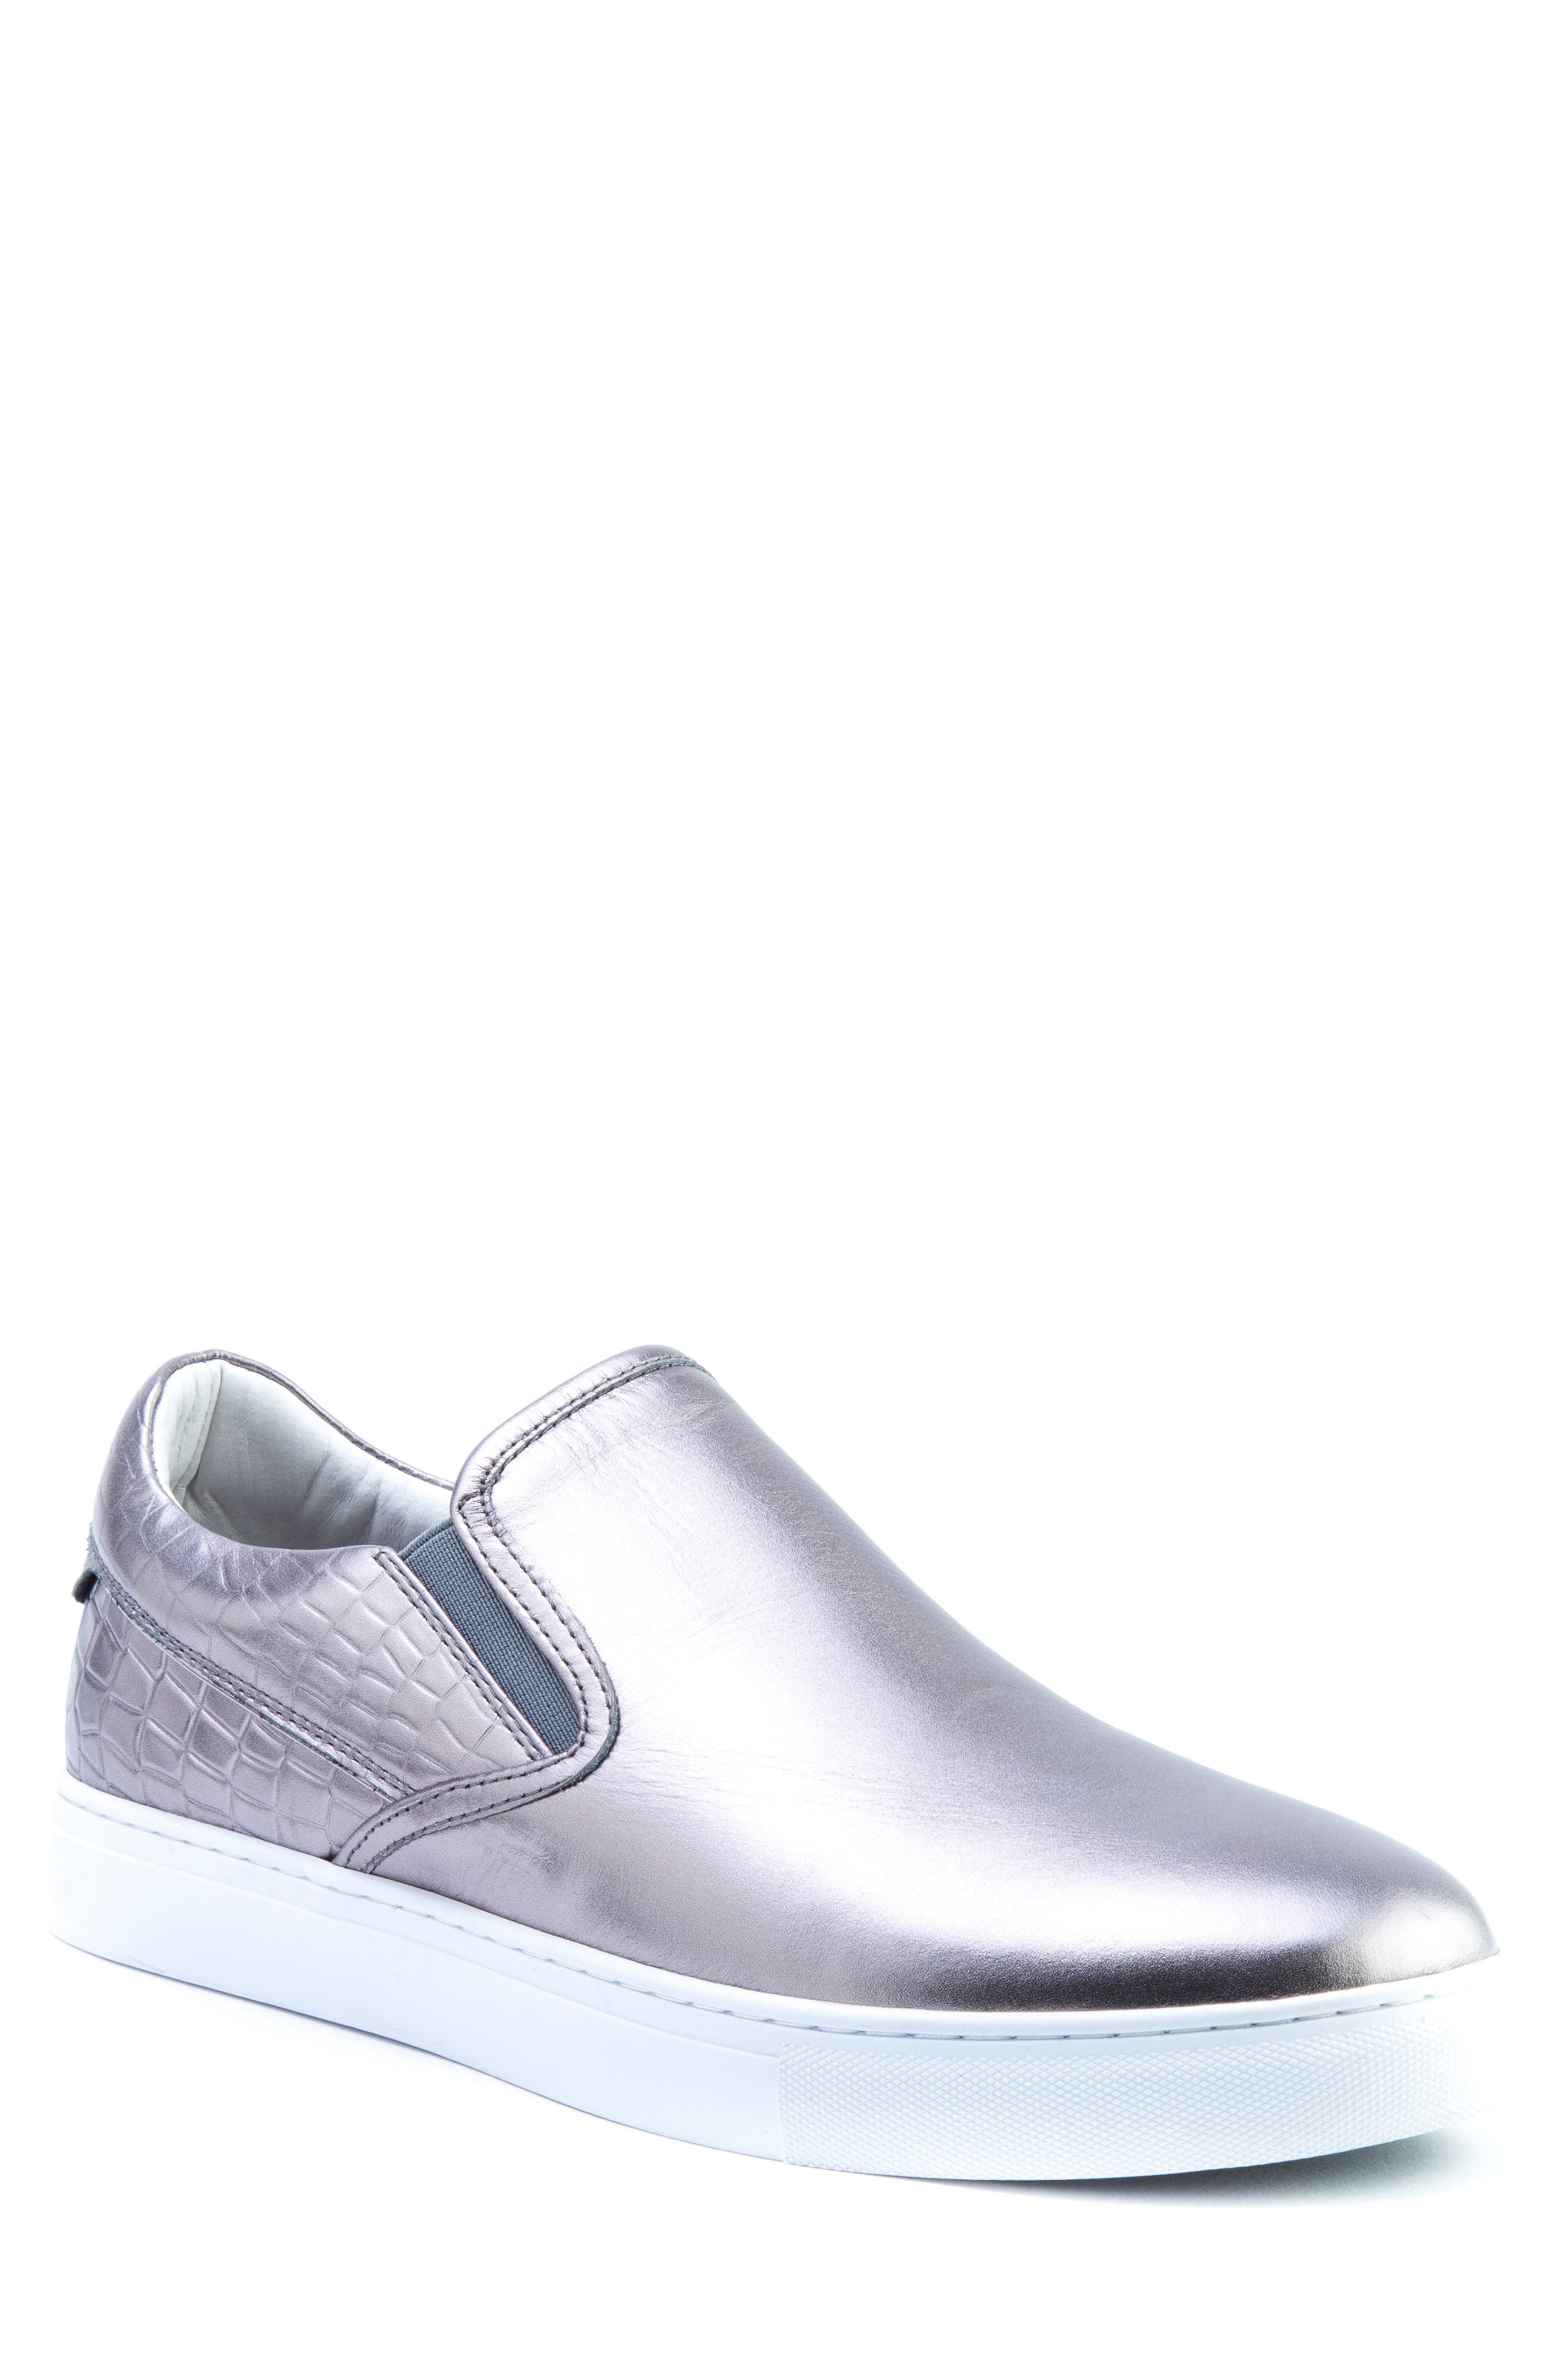 Alternate Image 1 Selected - Badgley Mischka Dean Sneaker (Men)